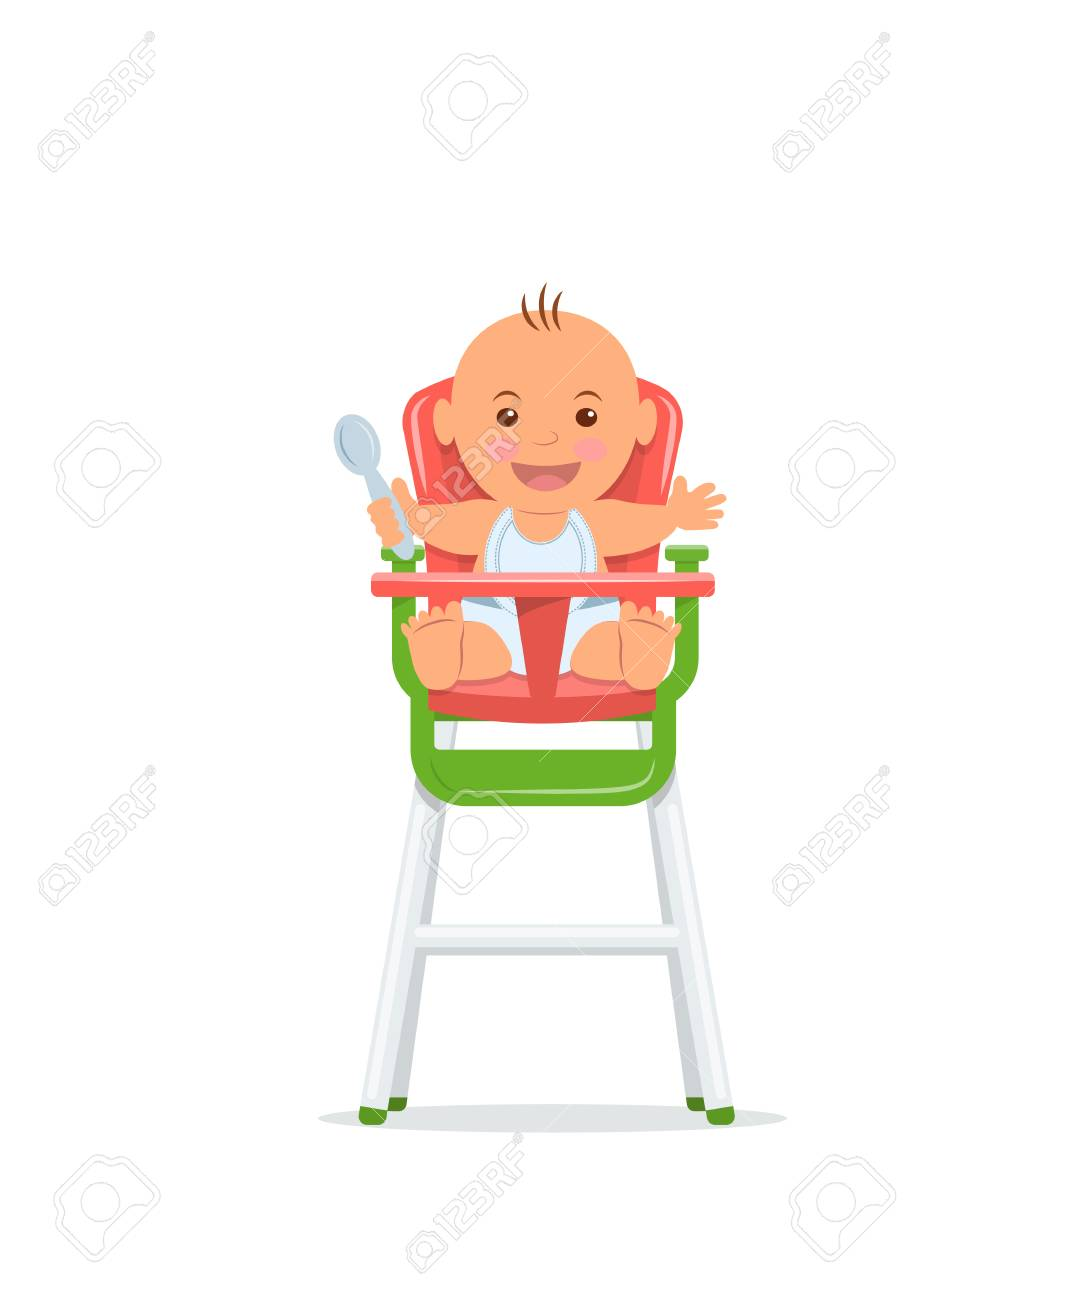 Cute baby sits on a high chair and holds a spoon. Baby healthy...